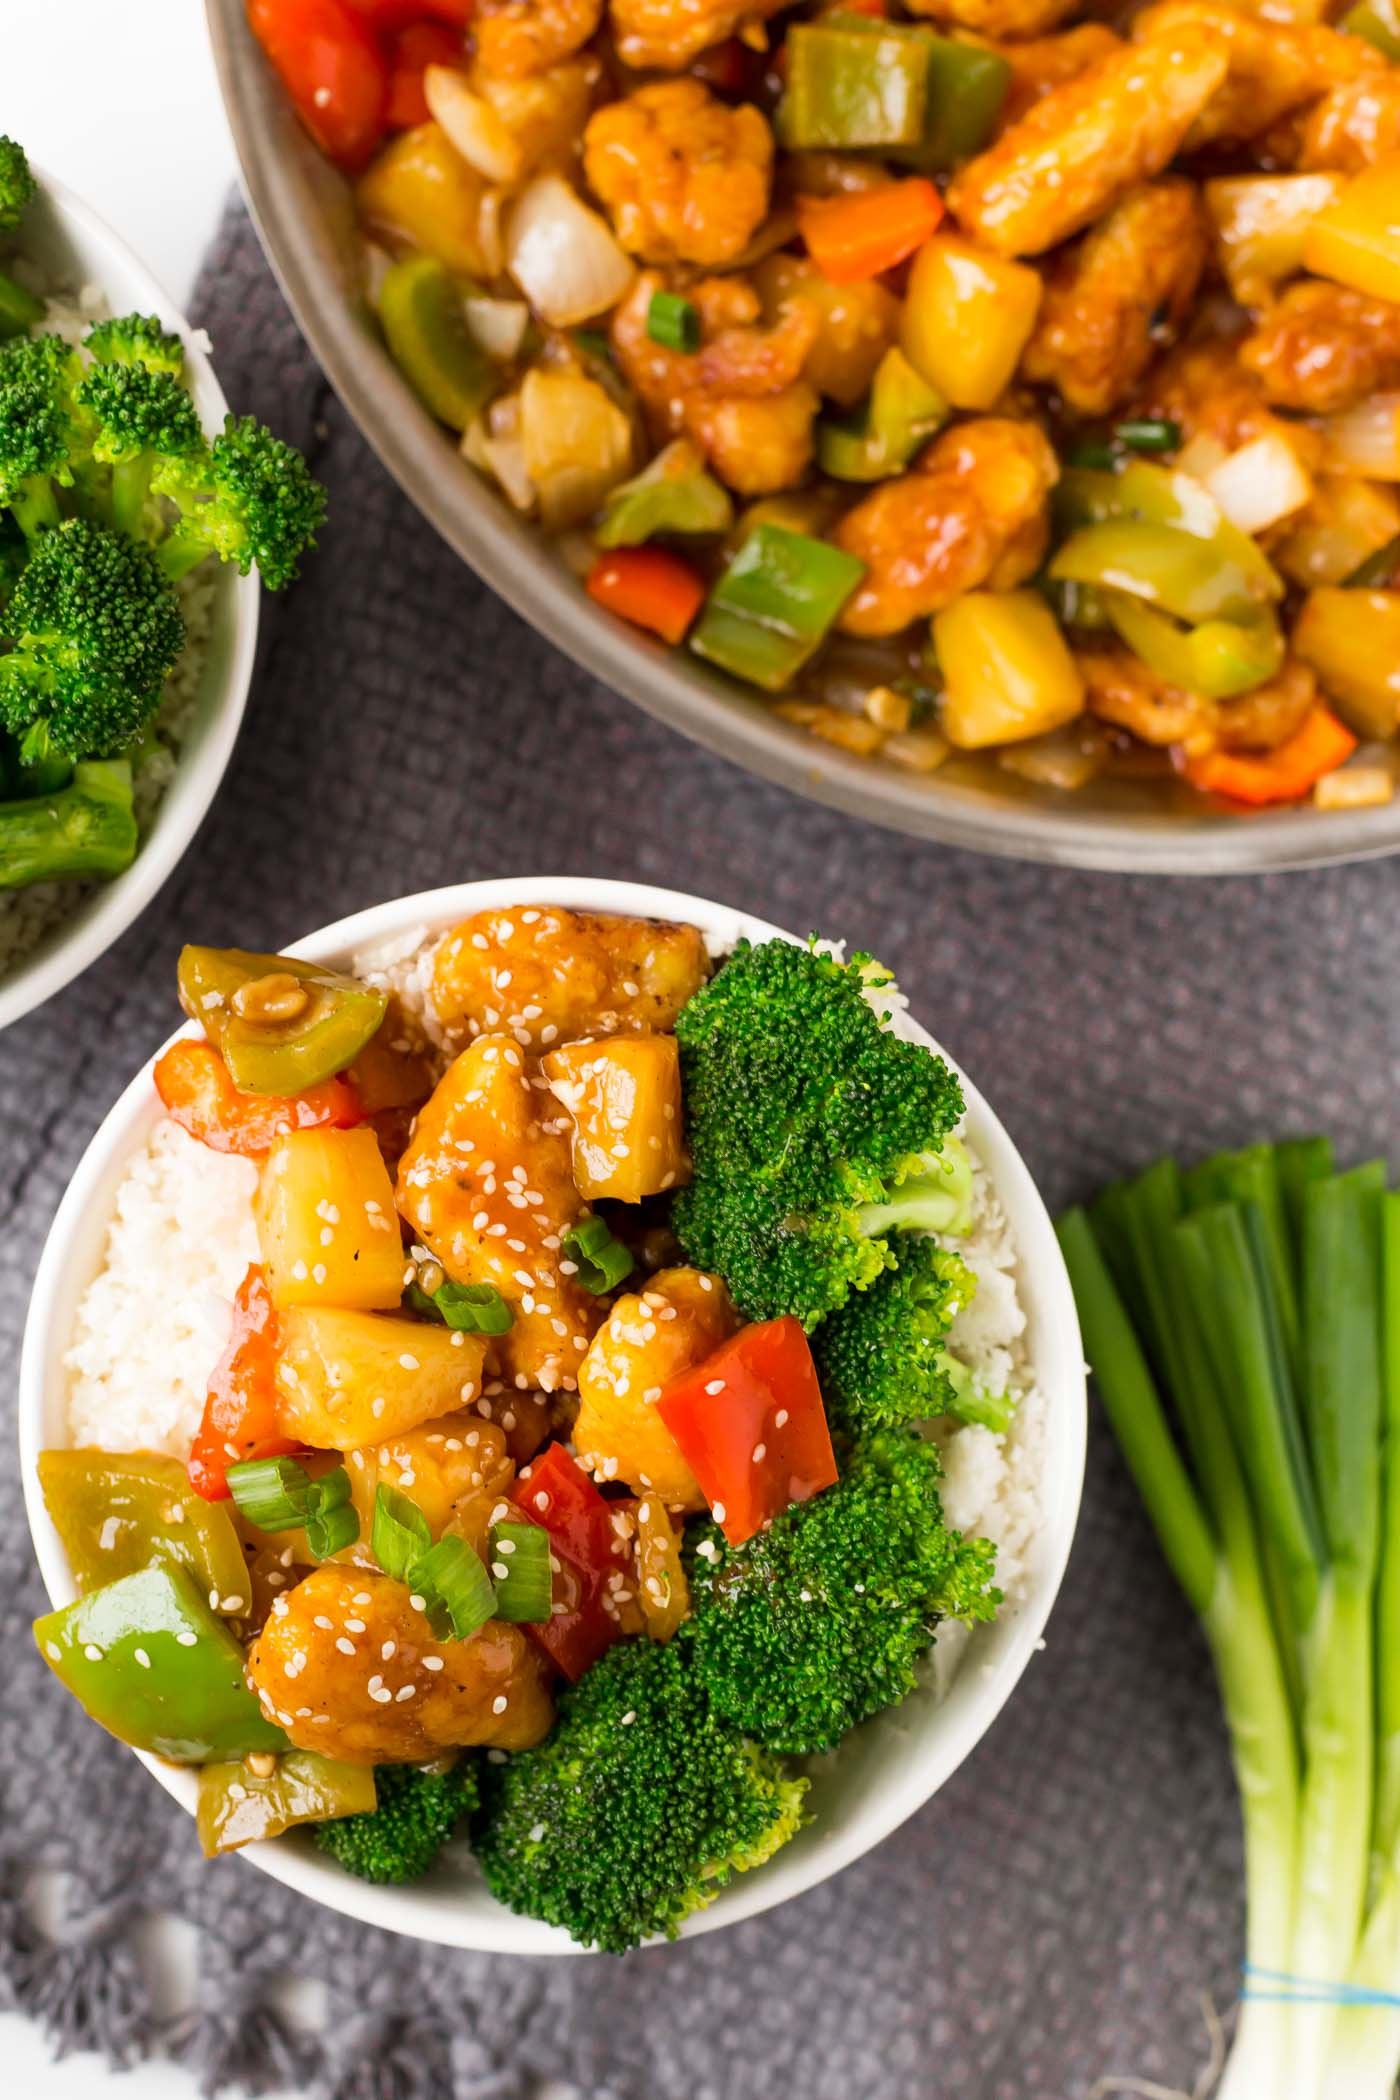 white bowl filled with sweet and sour chicken, broccoli, and cauliflower rice and skillet of sweet and sour chicken in corner